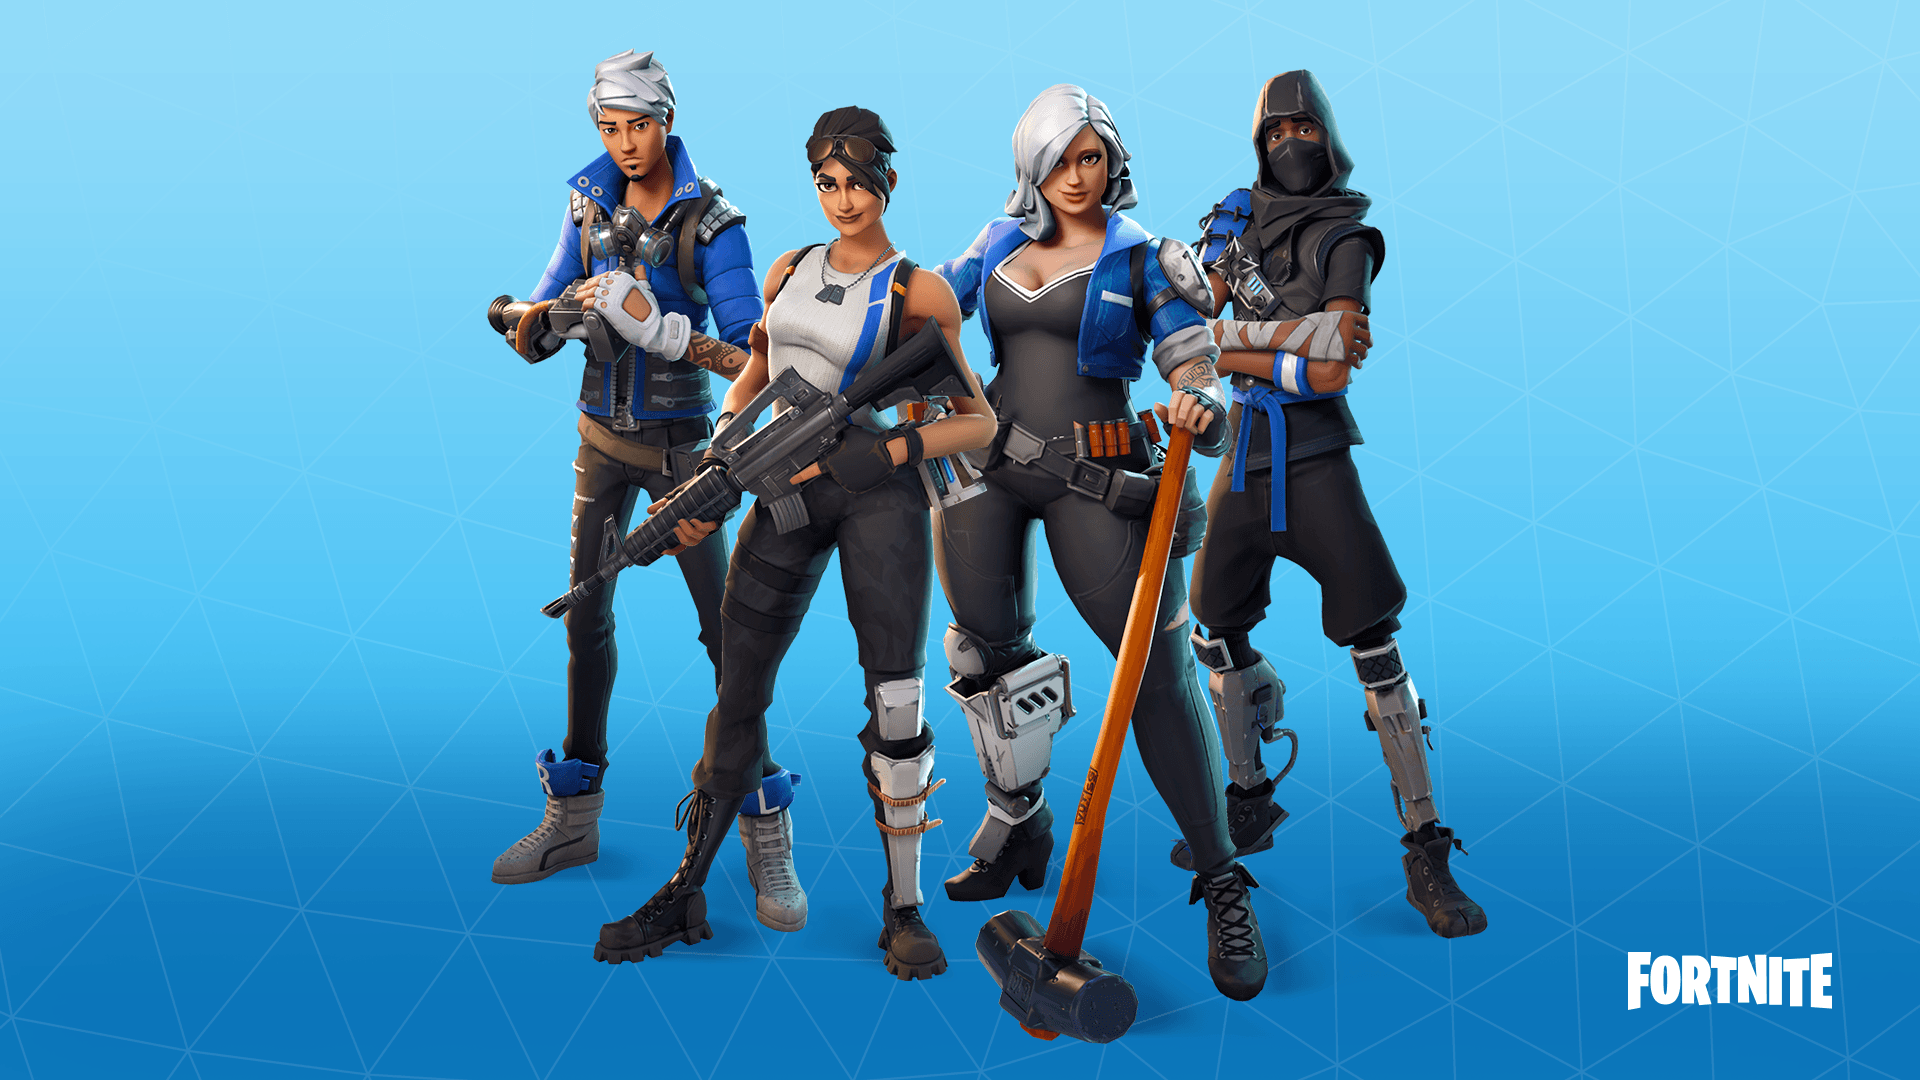 Fortnite Coming July 25 With PlayStation